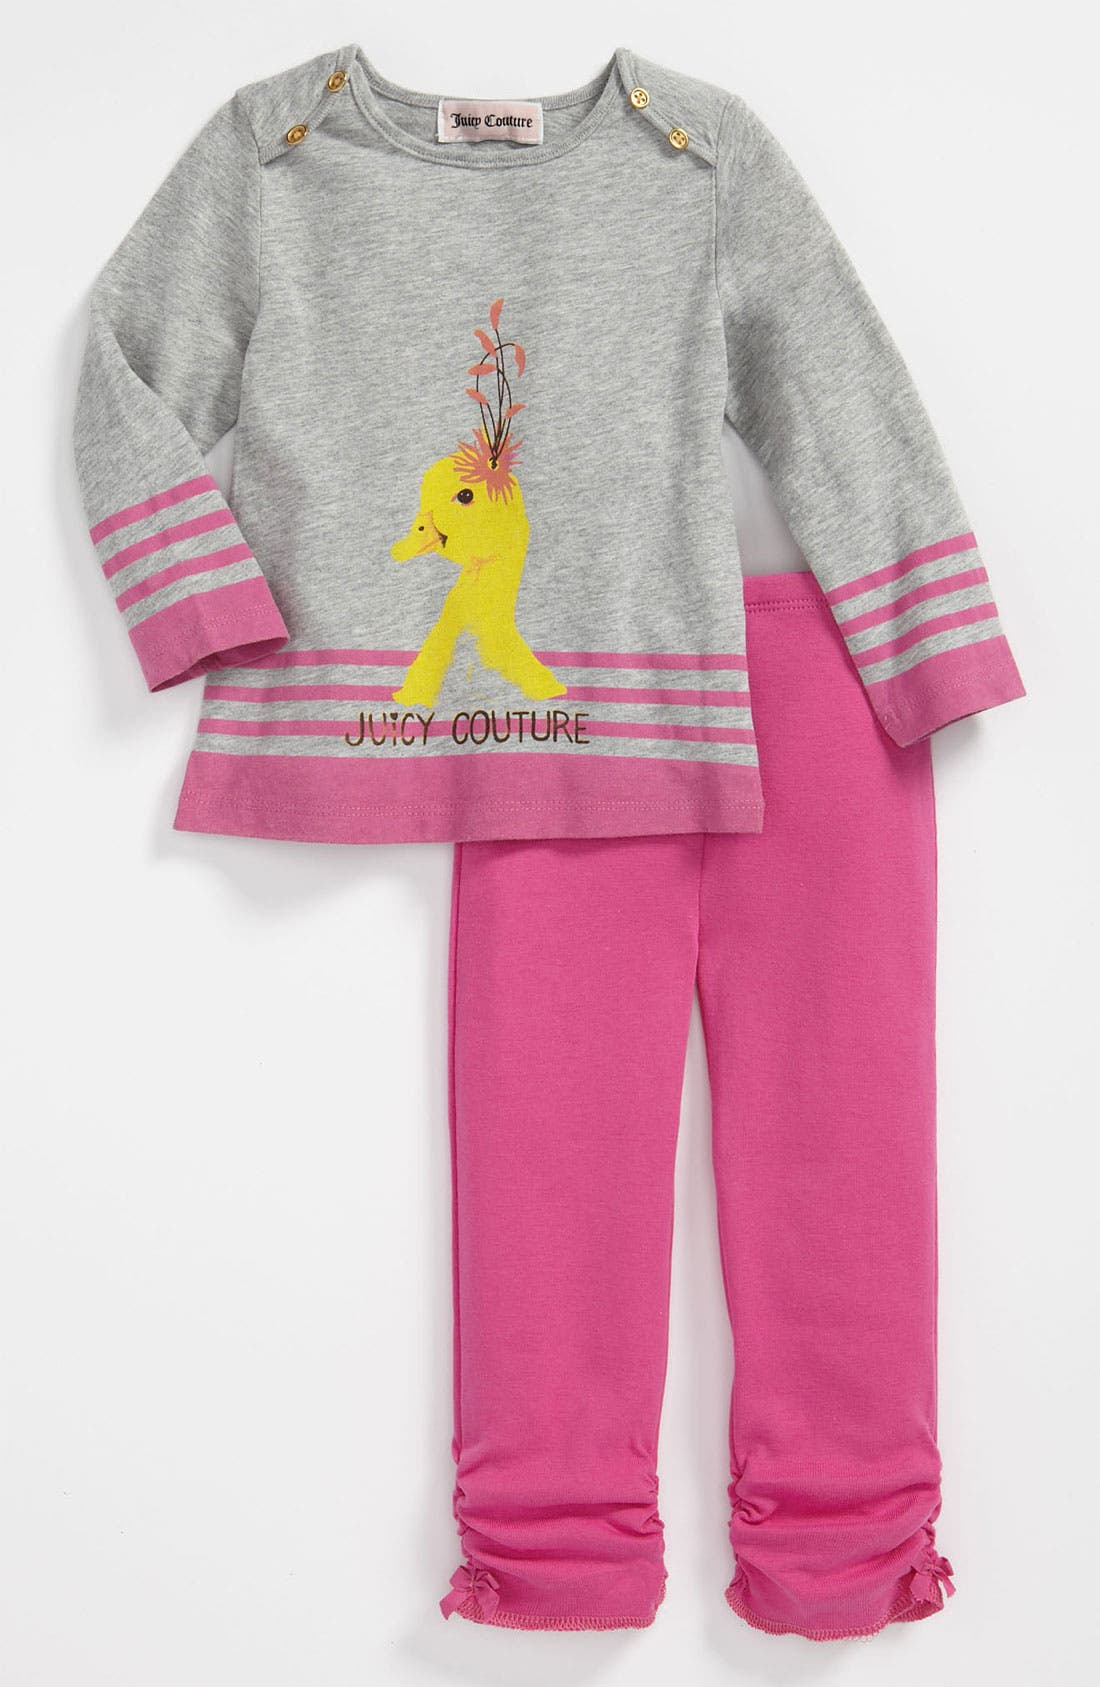 Alternate Image 1 Selected - Juicy Couture Knit Shirt & Leggings (Infant)